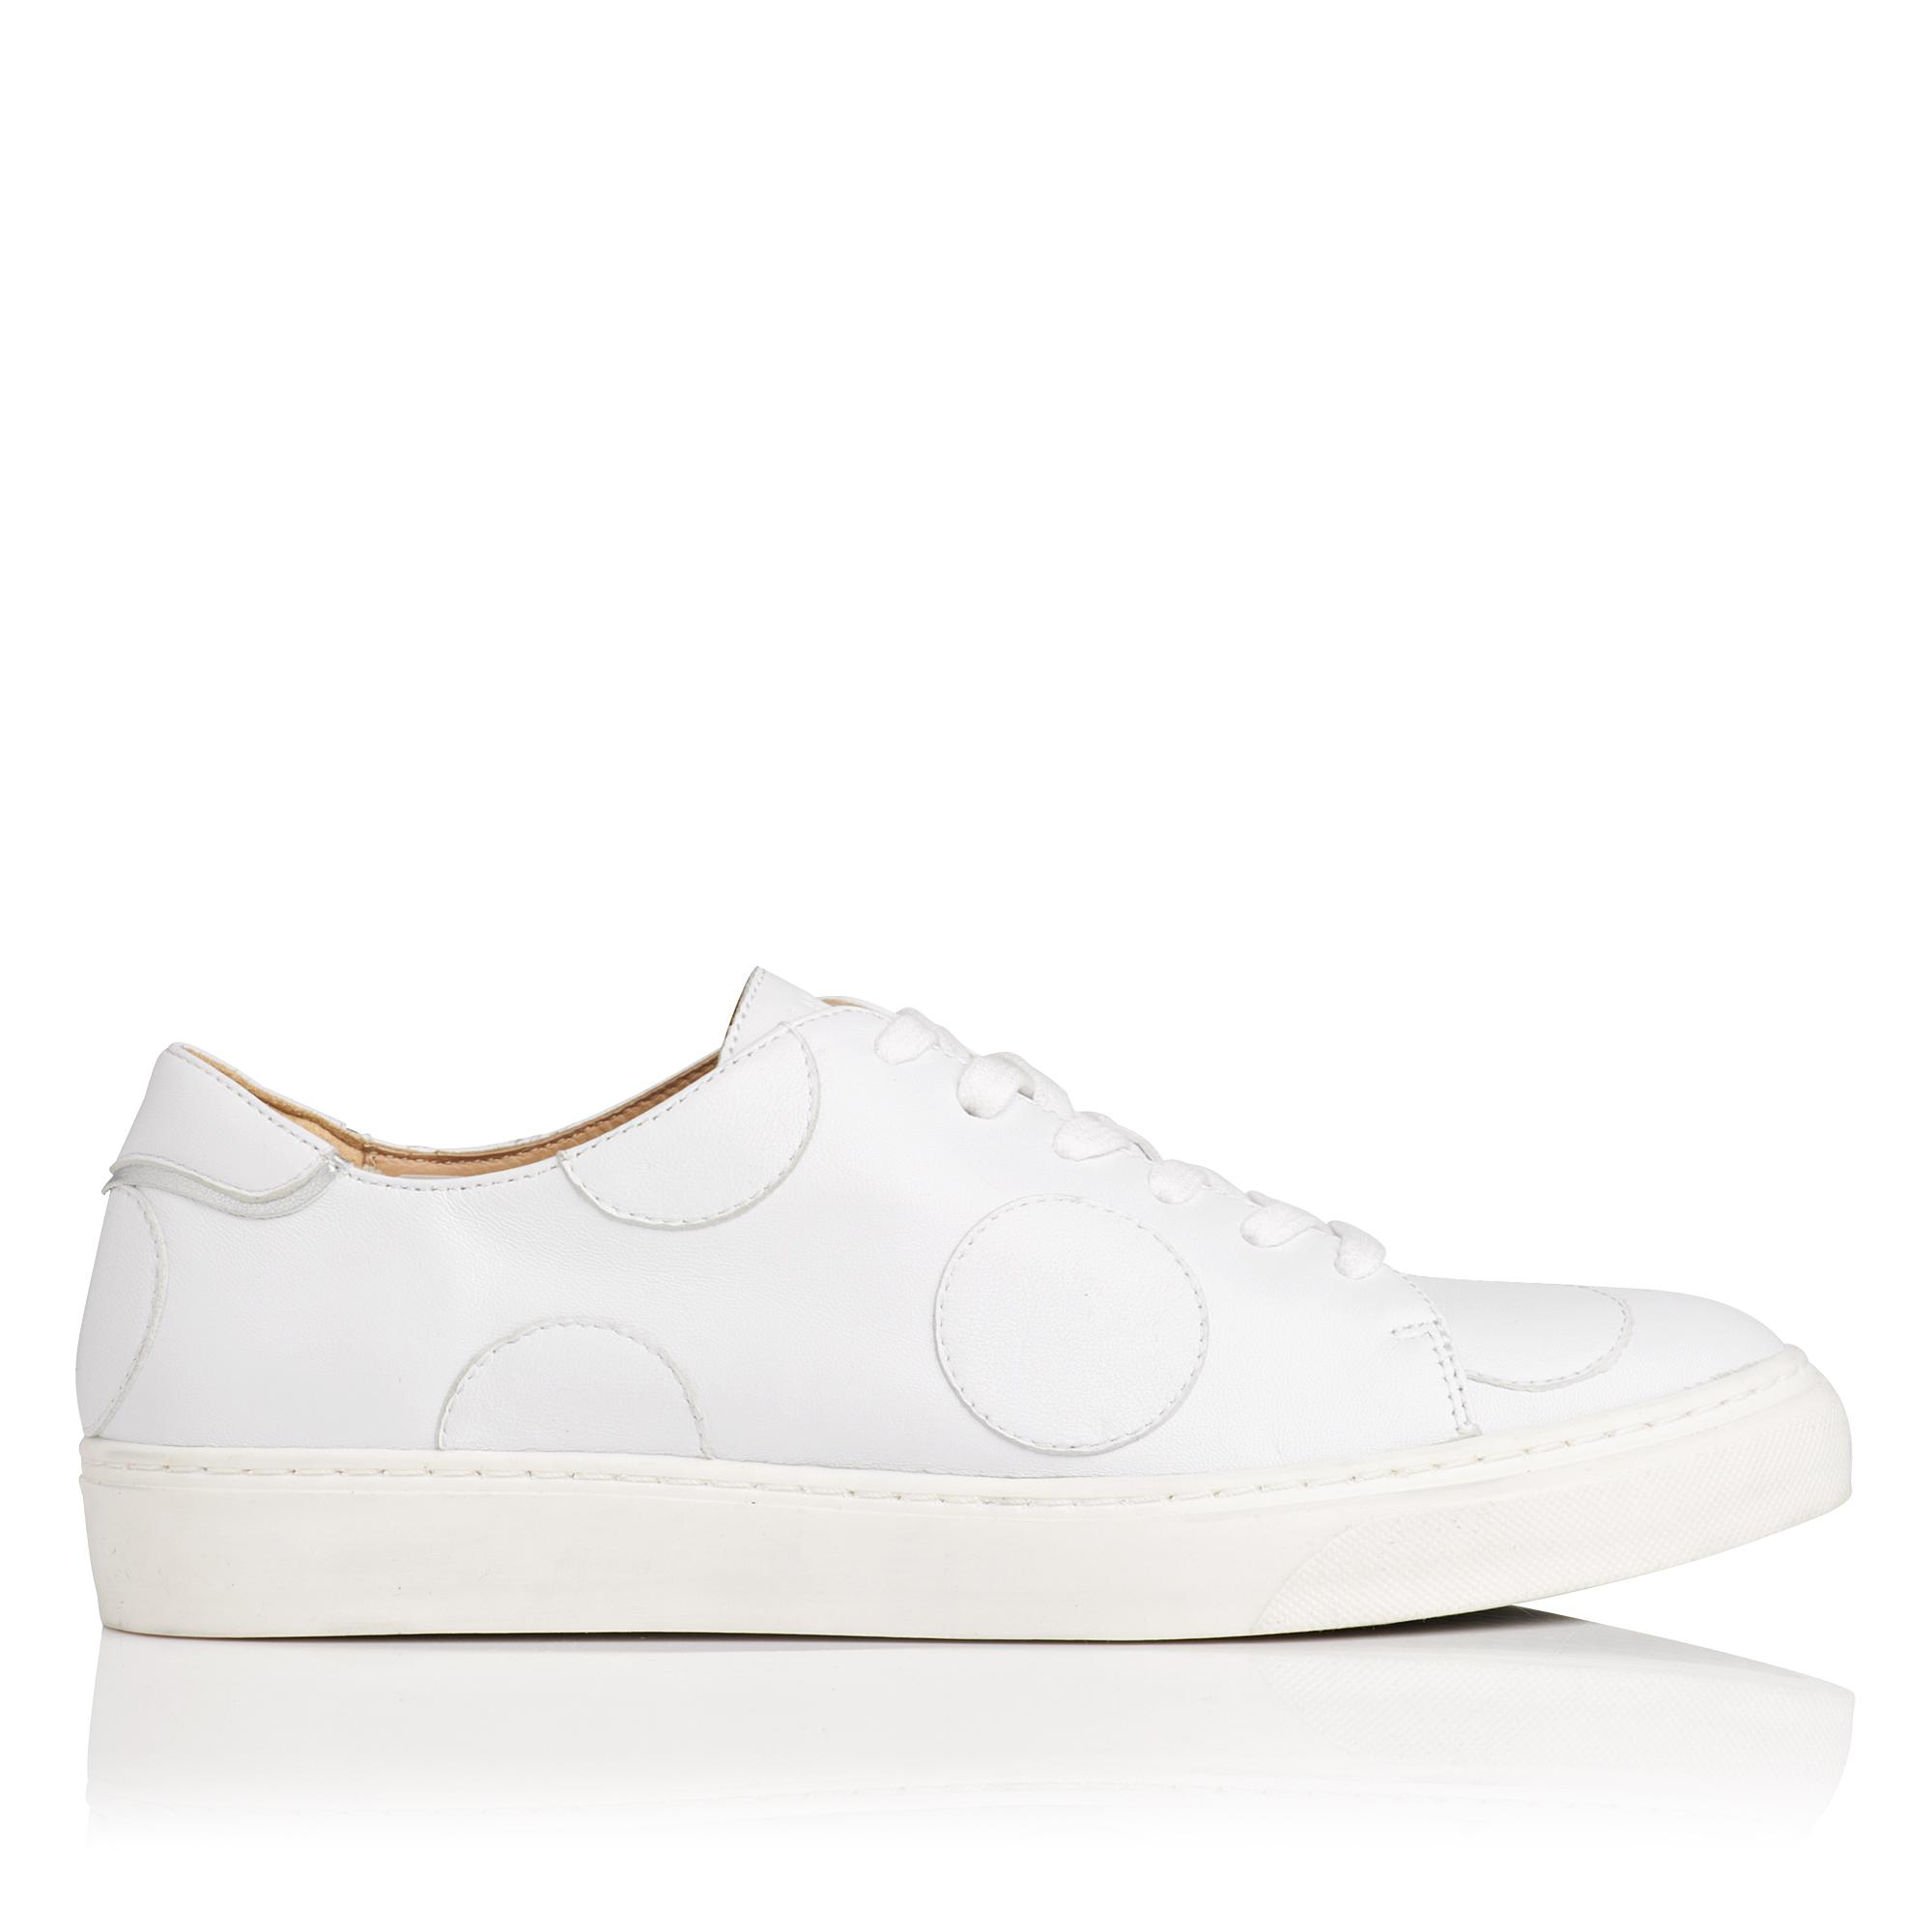 L.K.Bennett Reilly Leather Sneaker